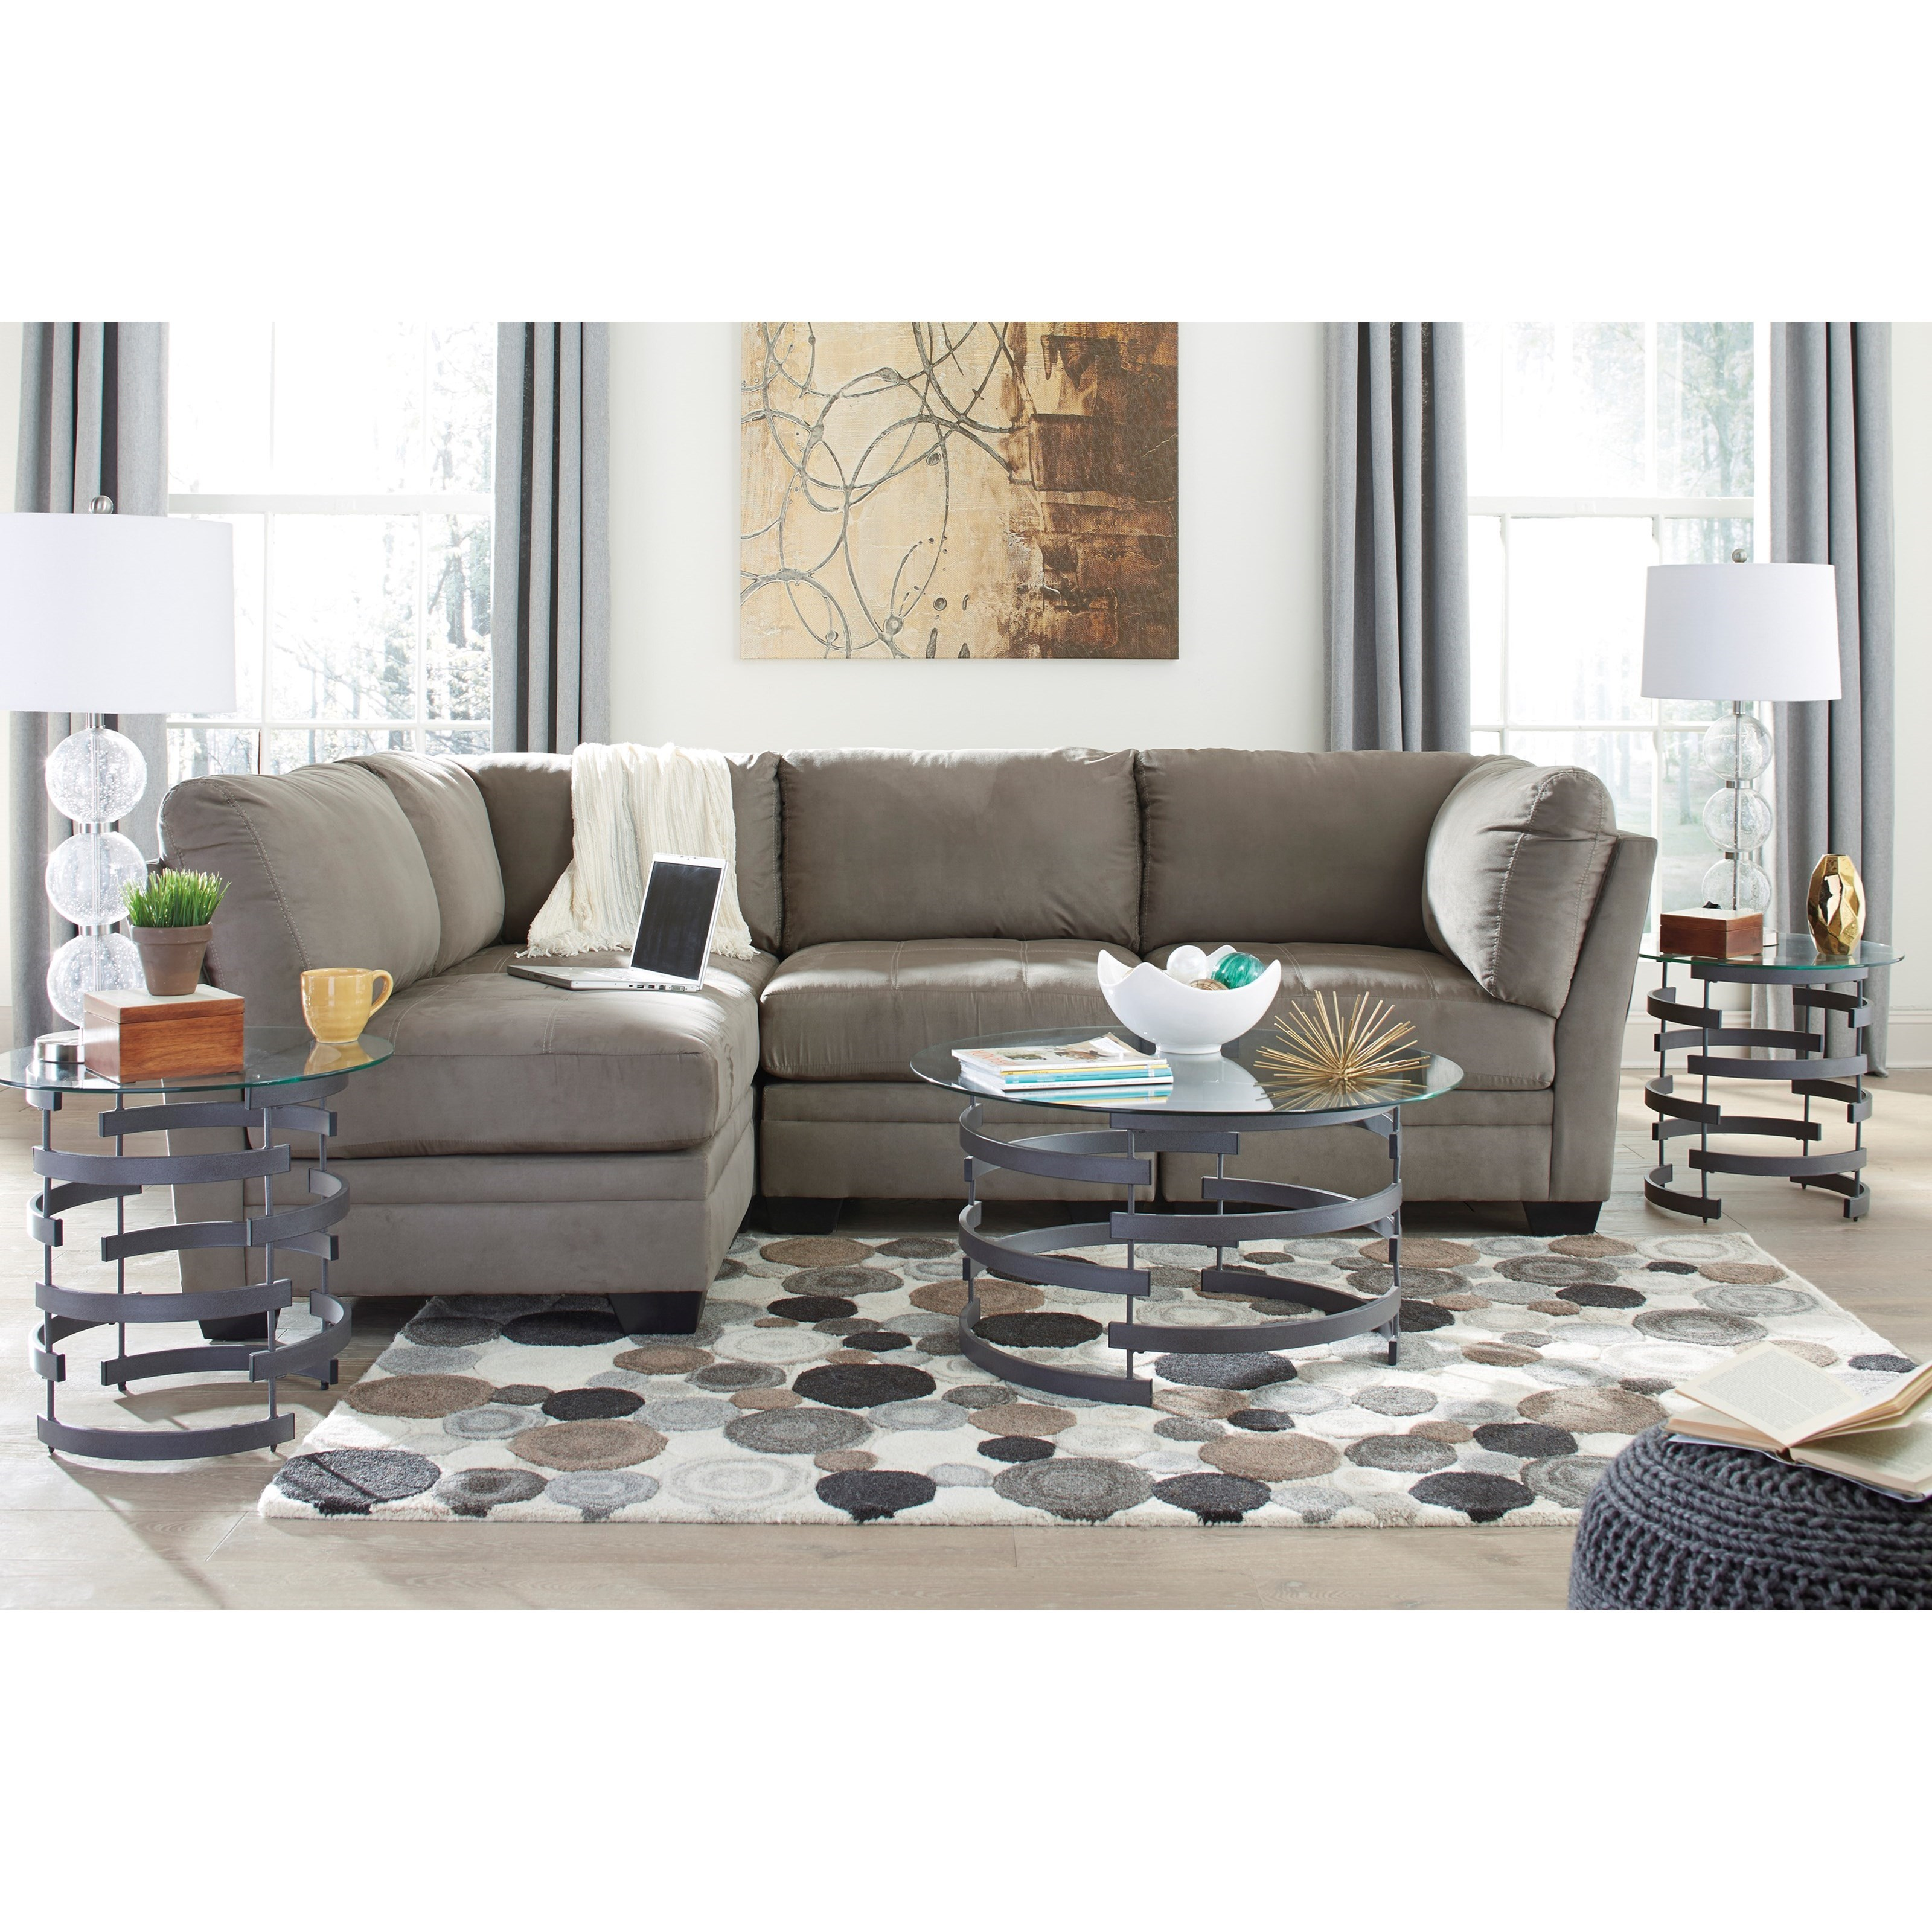 Modular Sectional Sofa Ashley: Signature Design By Ashley Iago 4-Piece Modular Sectional